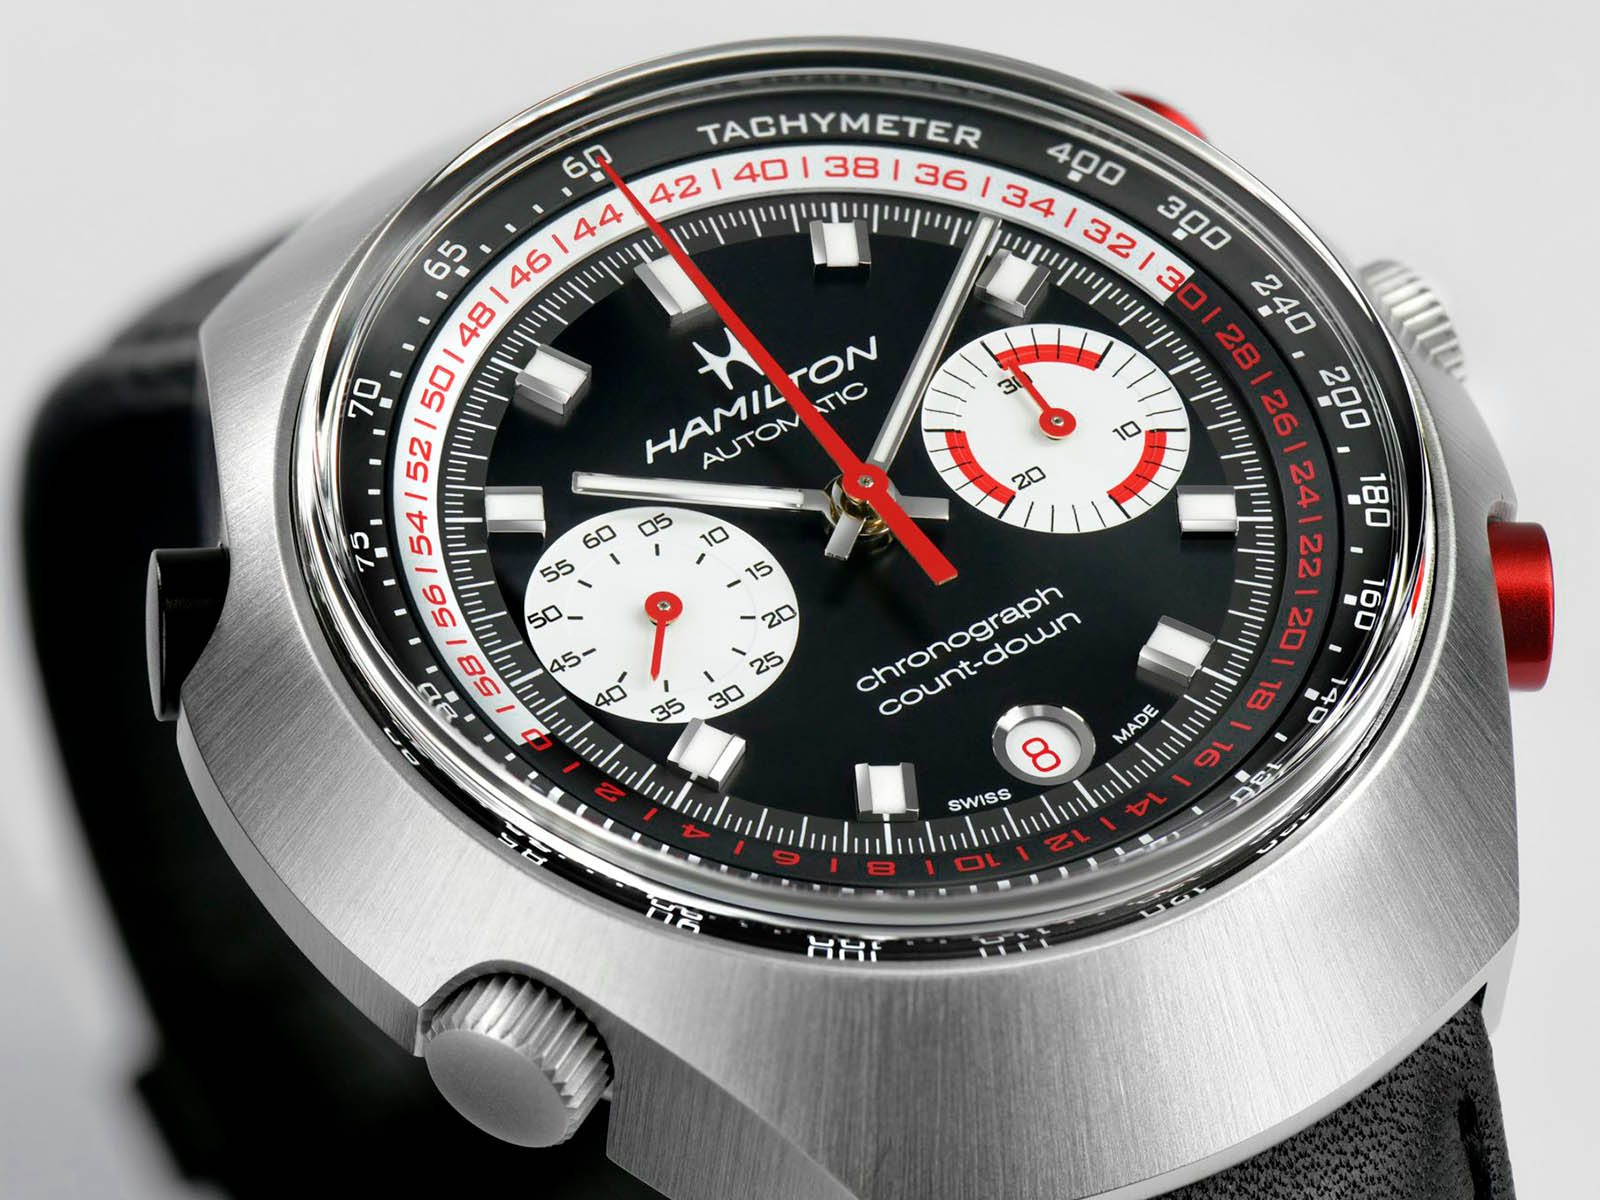 h51616731-hamilton-chrono-matic-50-auto-chrono-limited-edition-7.jpg